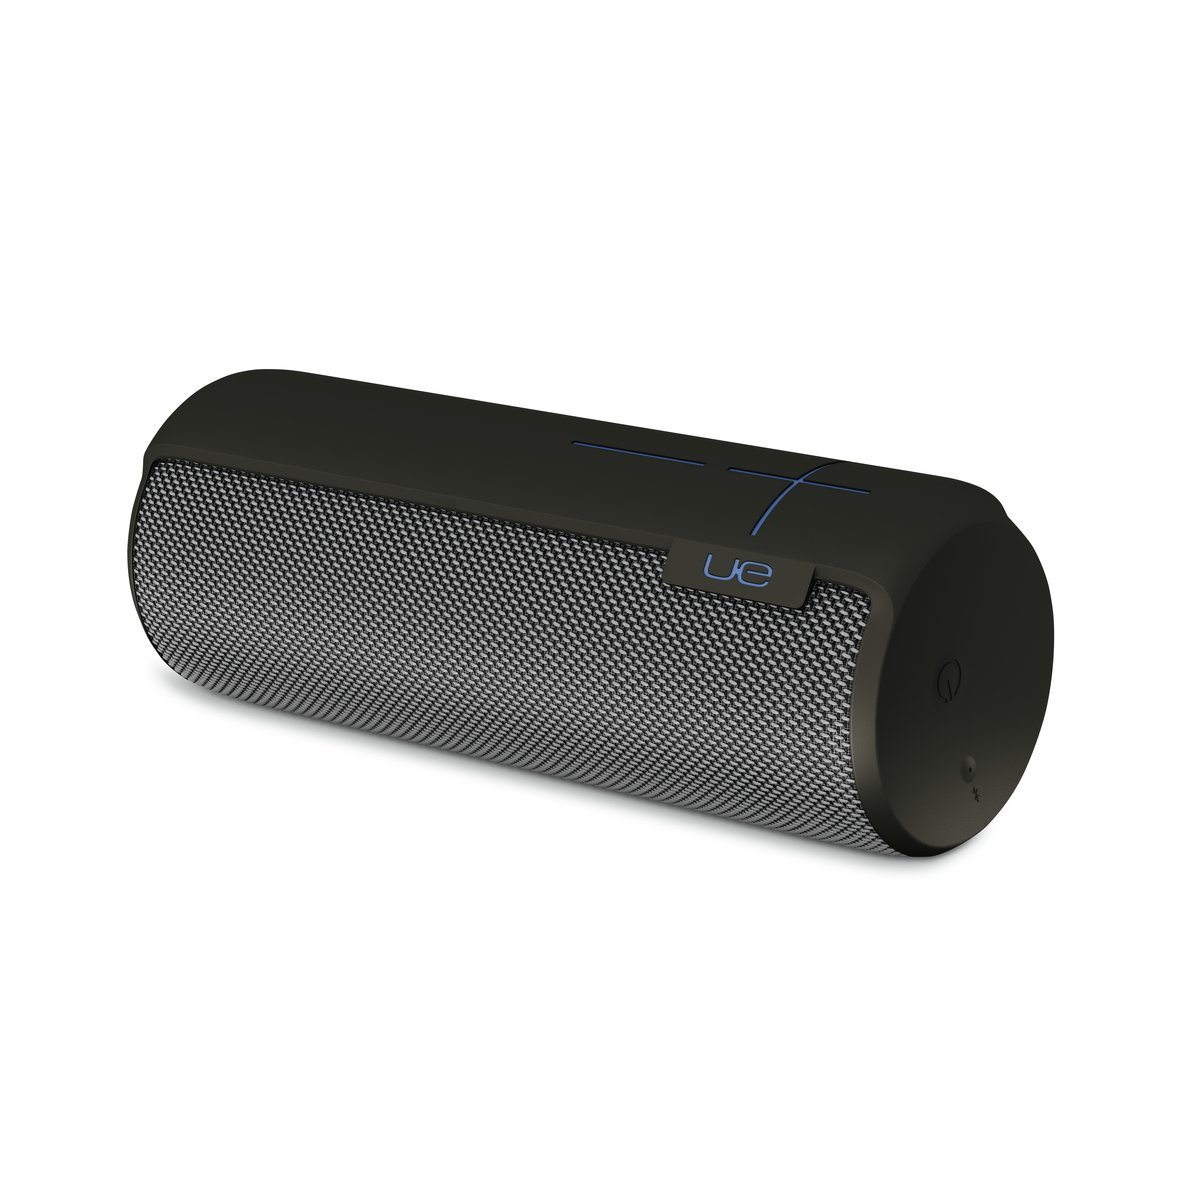 Bose Soundlink Mini 2 vs Ue Megaboom